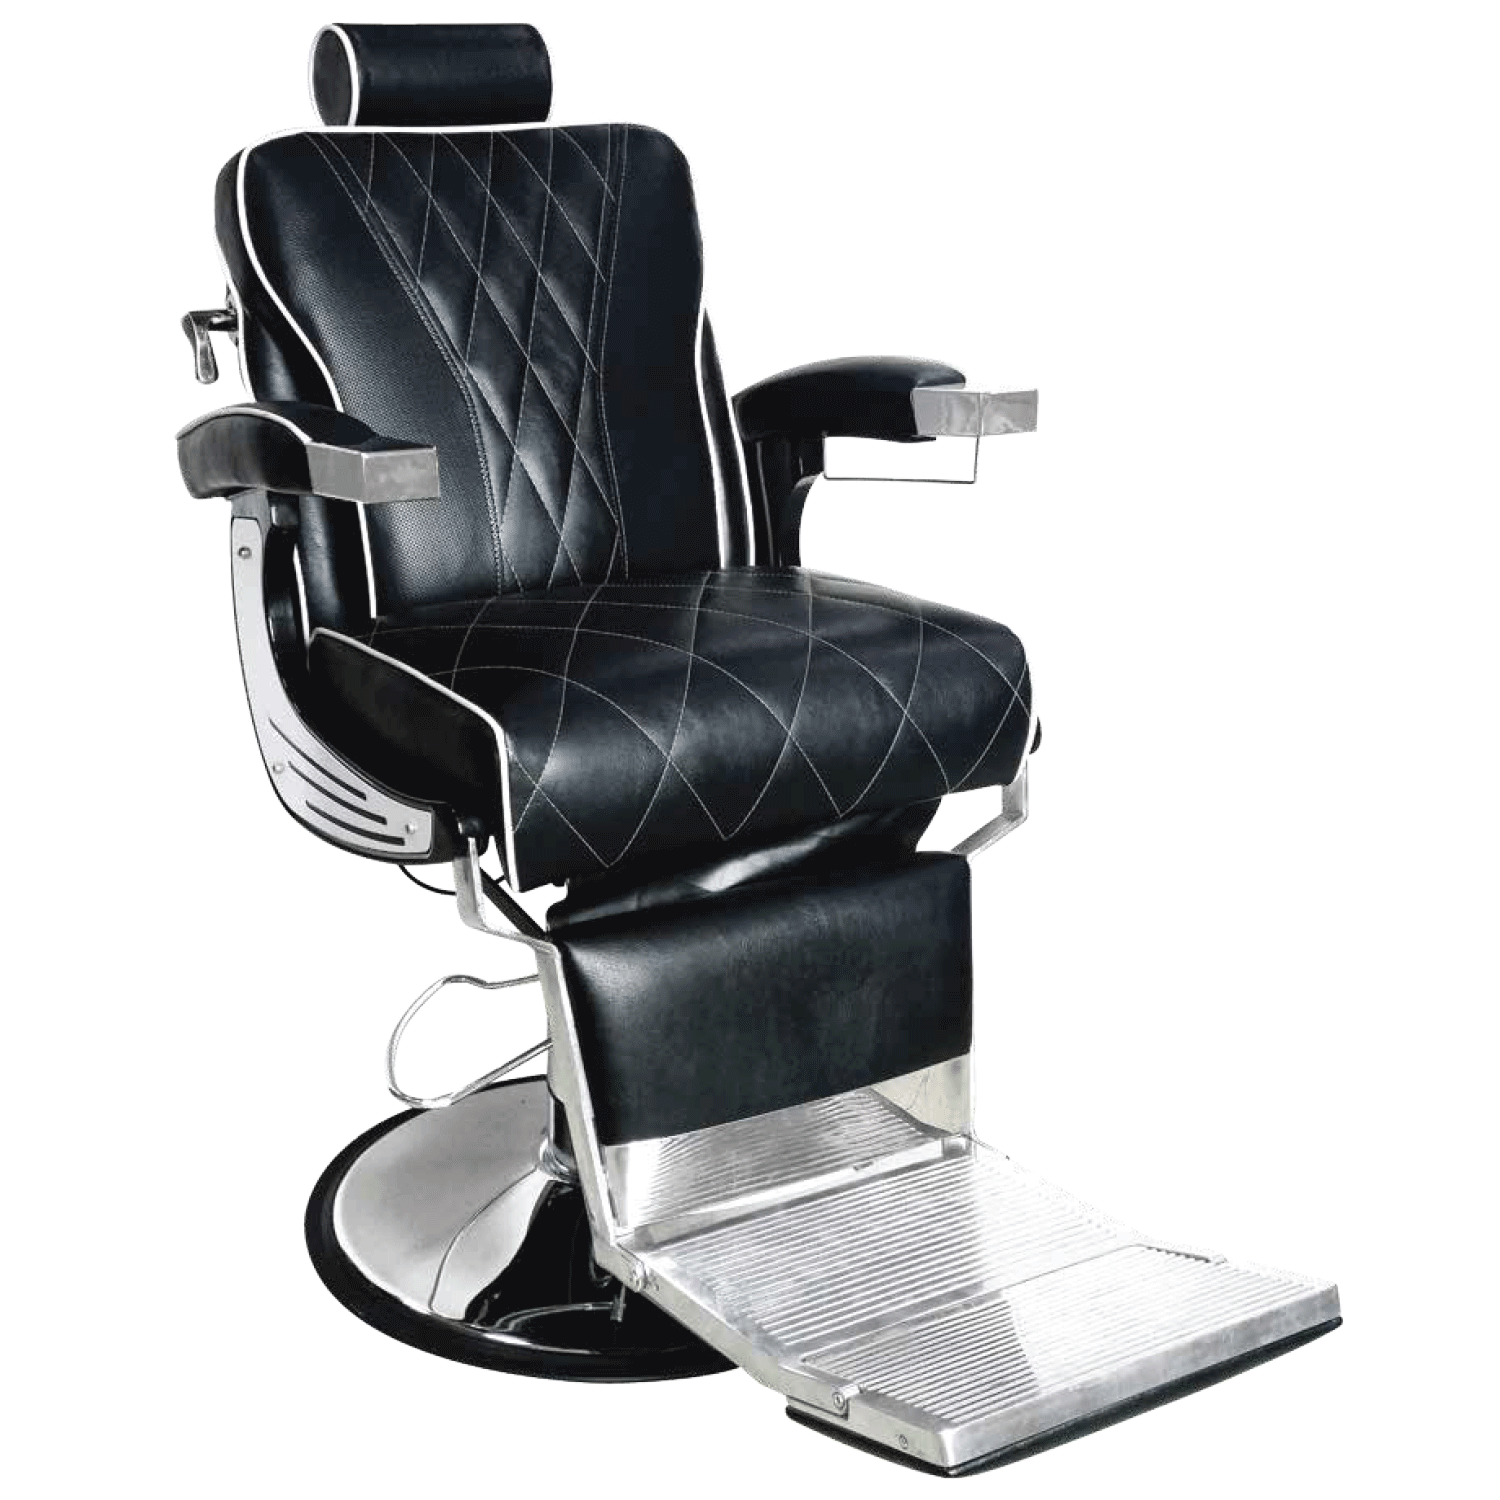 hair stylist chair png